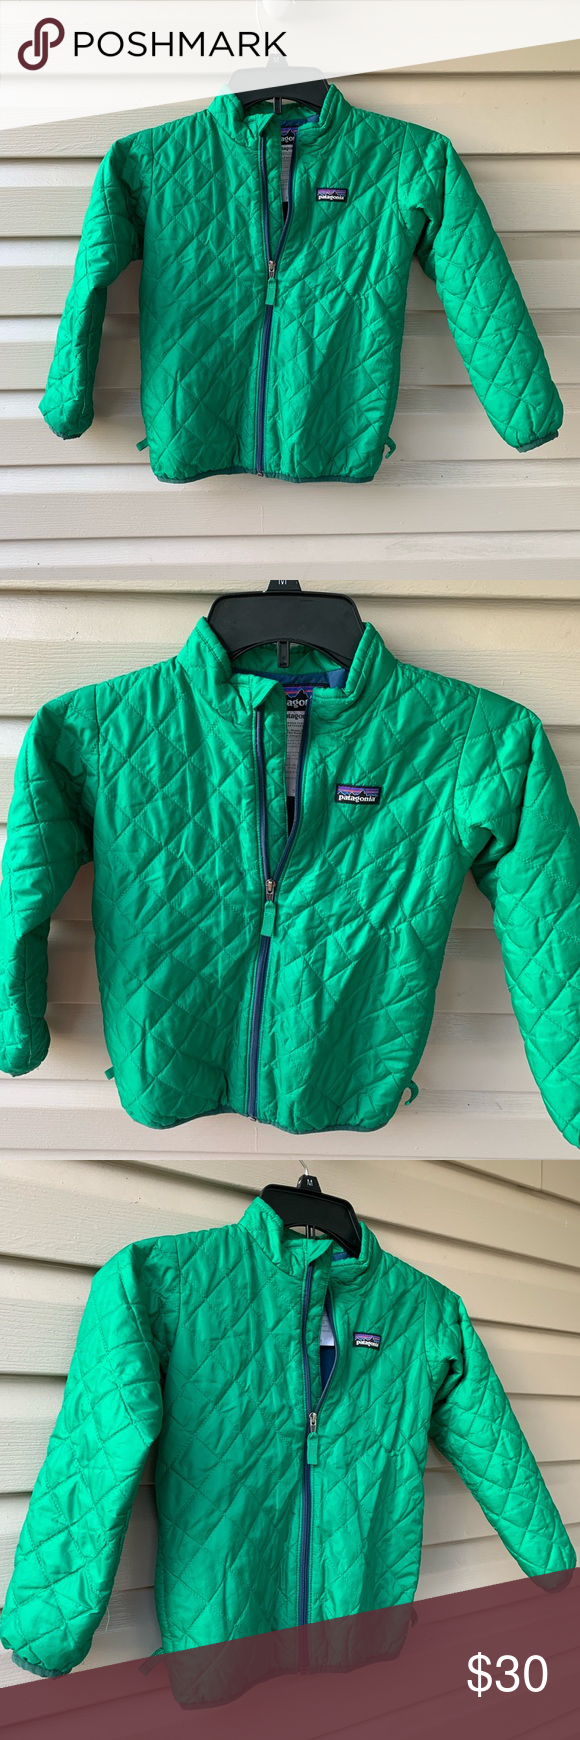 Patagonia Kids 5t Puffer Jacket Green (With images